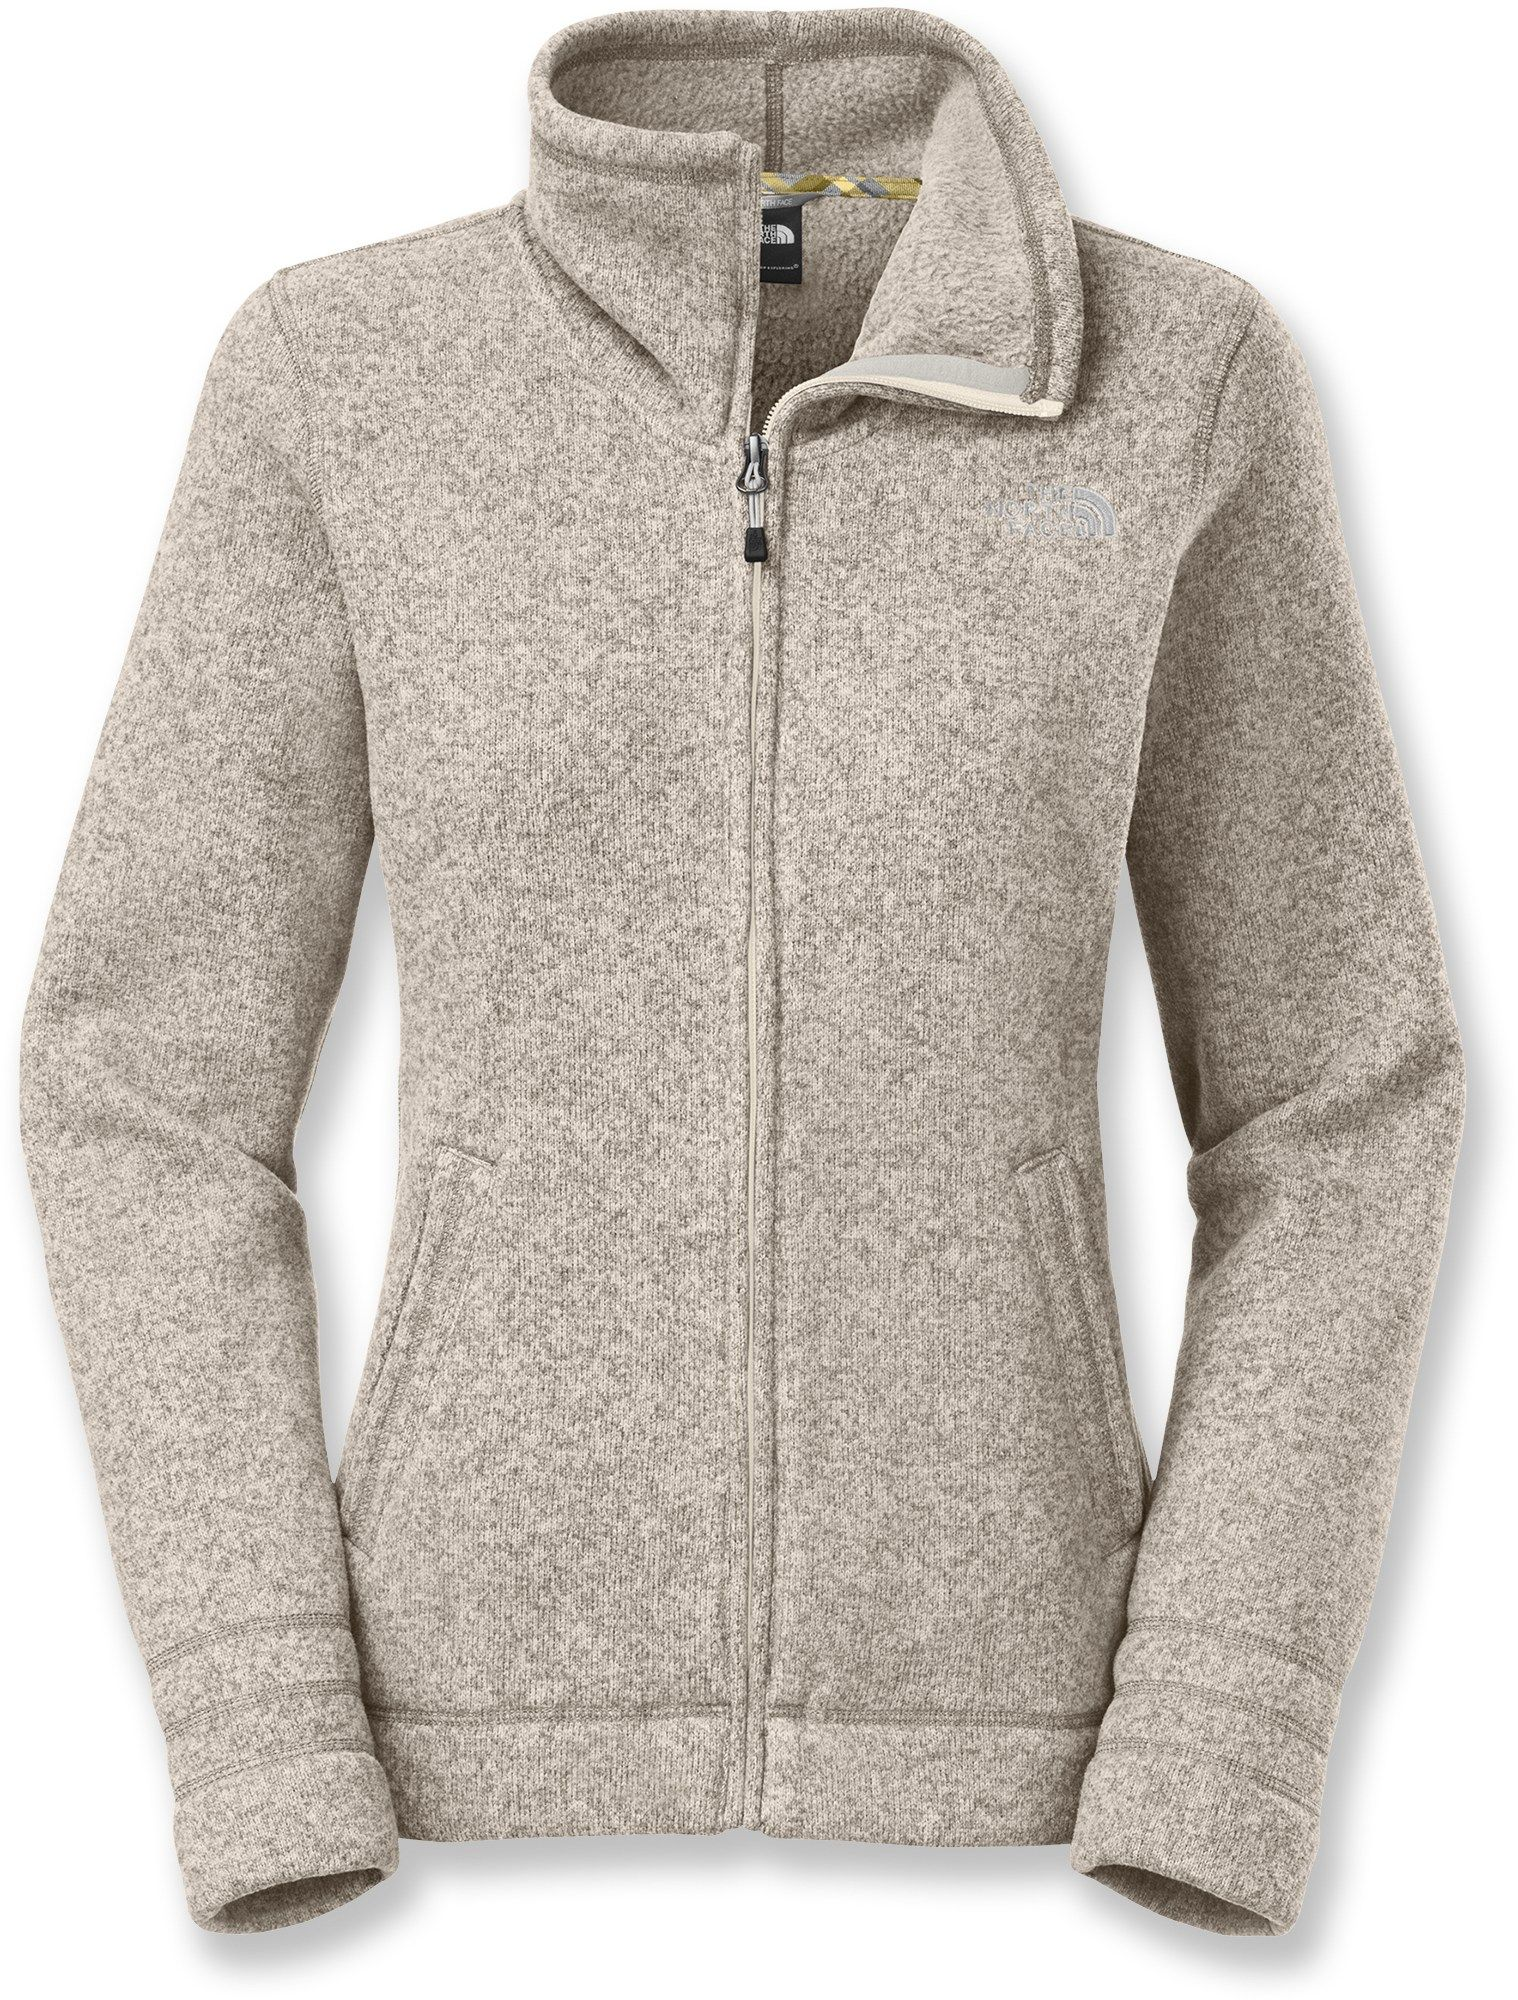 North Face Crescent Sunset Full-zip Fleece Jacket - Women' Rei -op In 2019 Costly